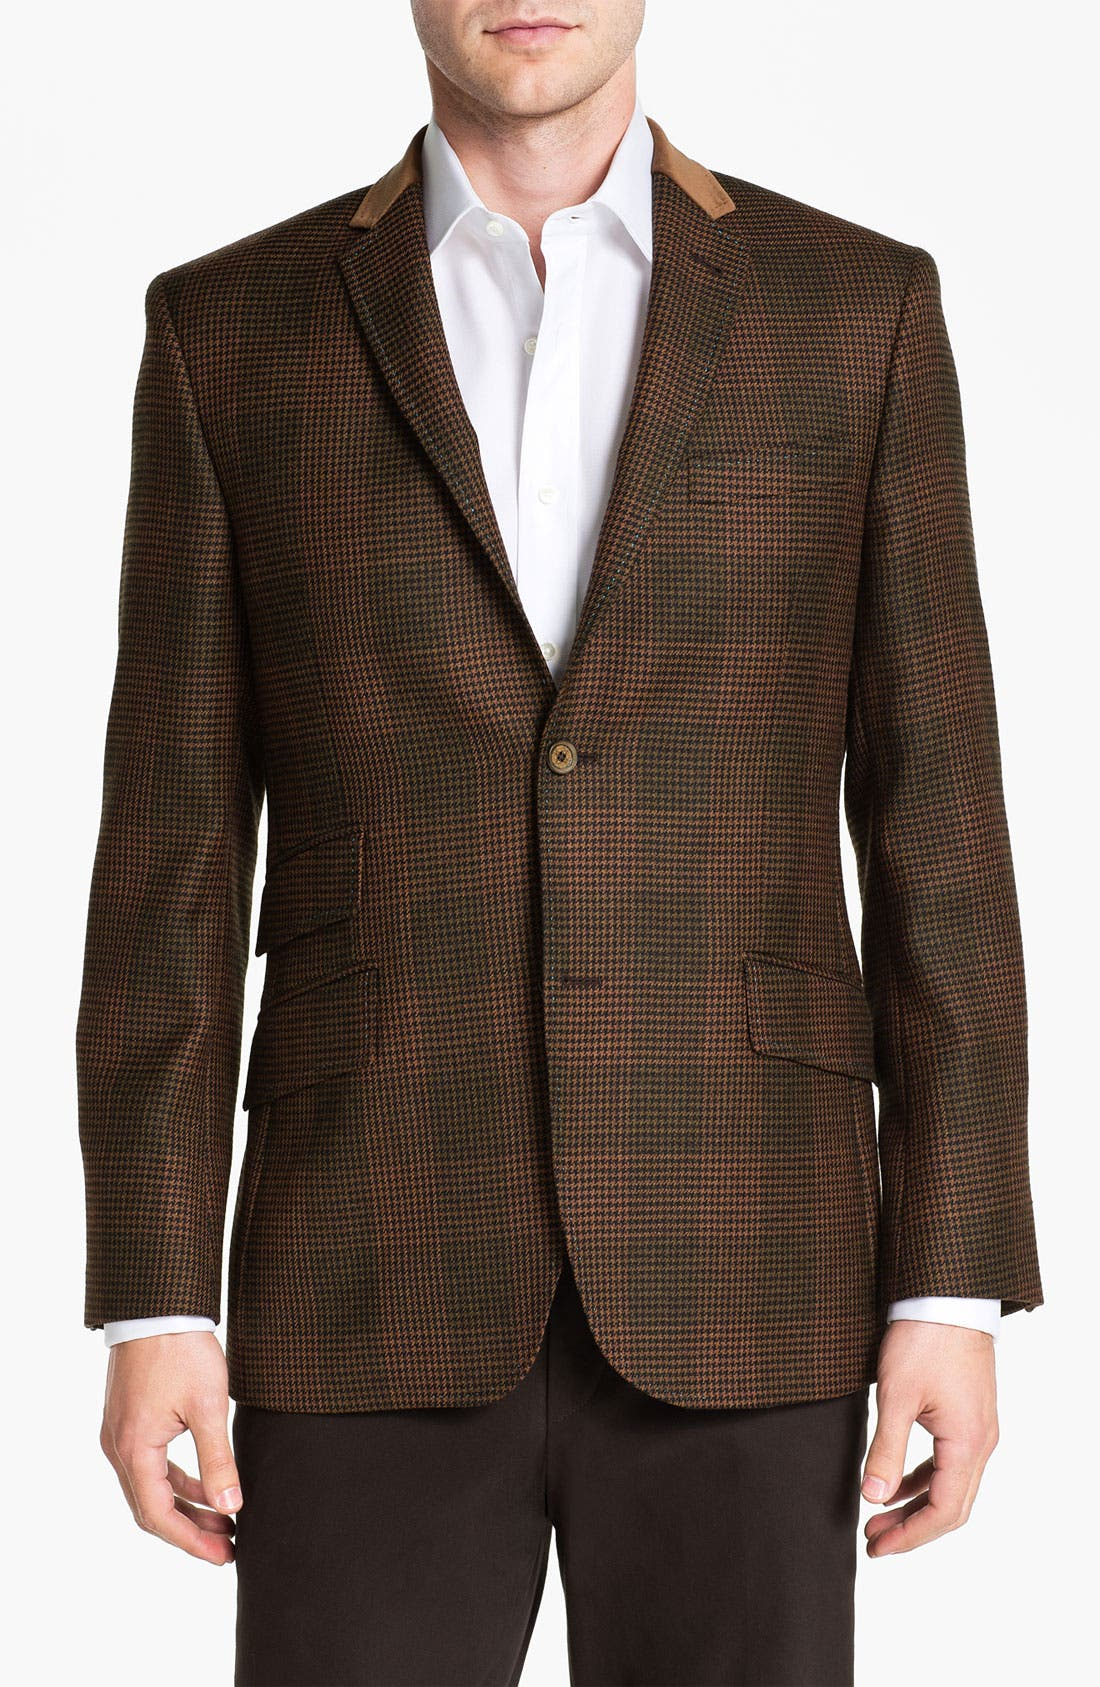 Alternate Image 1 Selected - Ted Baker London 'Global' Trim Fit Check Sportcoat